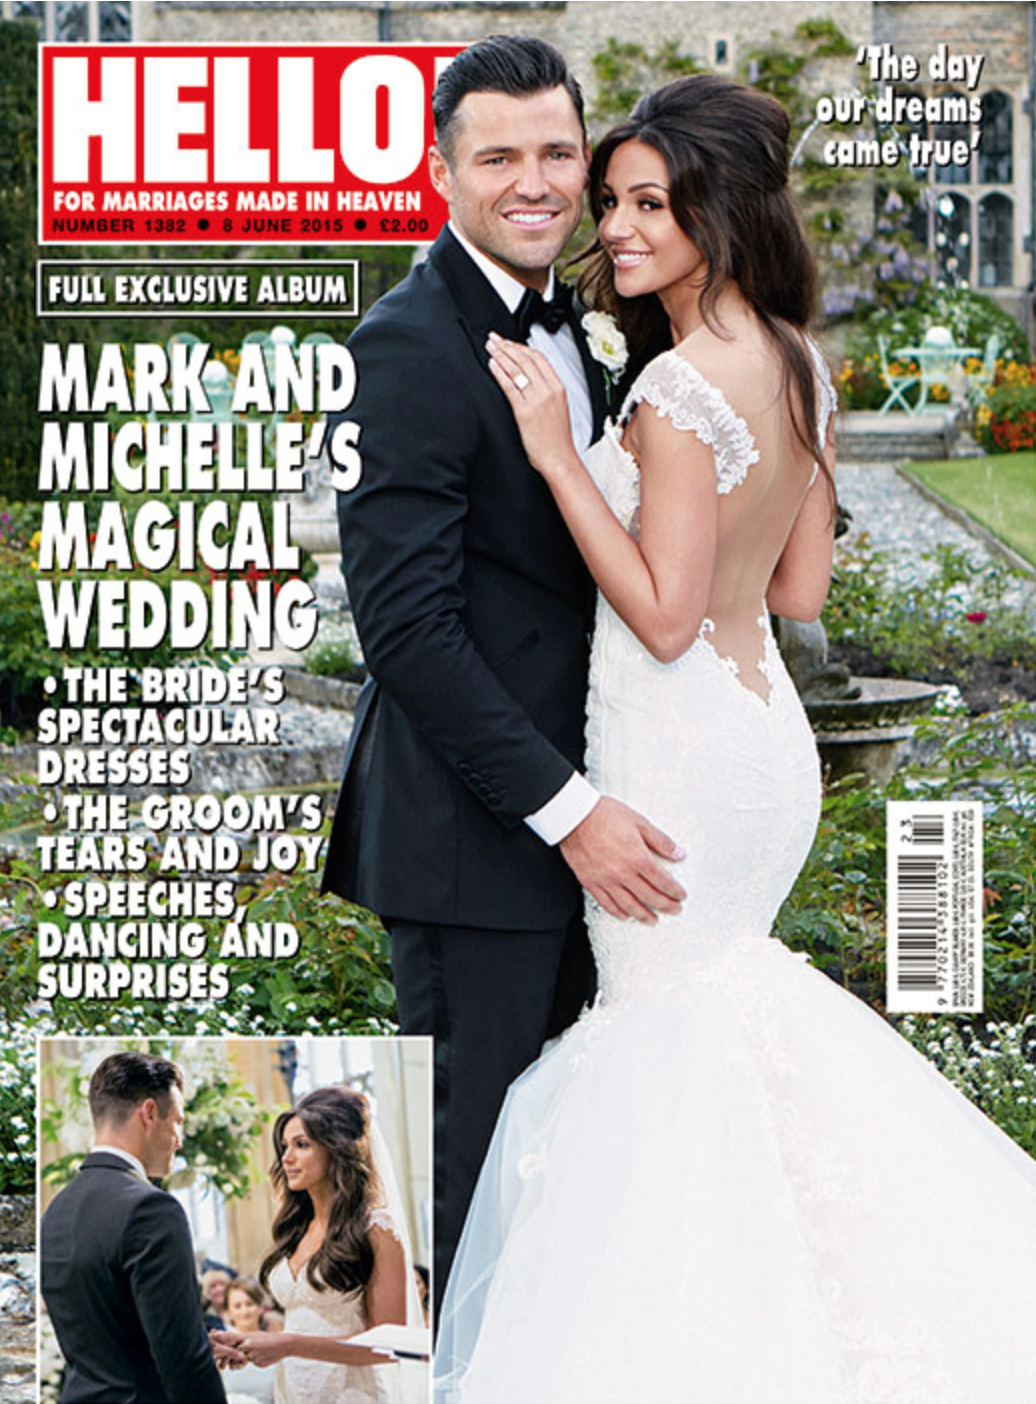 RT @alanstrutt: My cover of @hellomag of @michkeegan @MarkWright_  wedding out tomorrow http://t.co/9cpz8zonVP